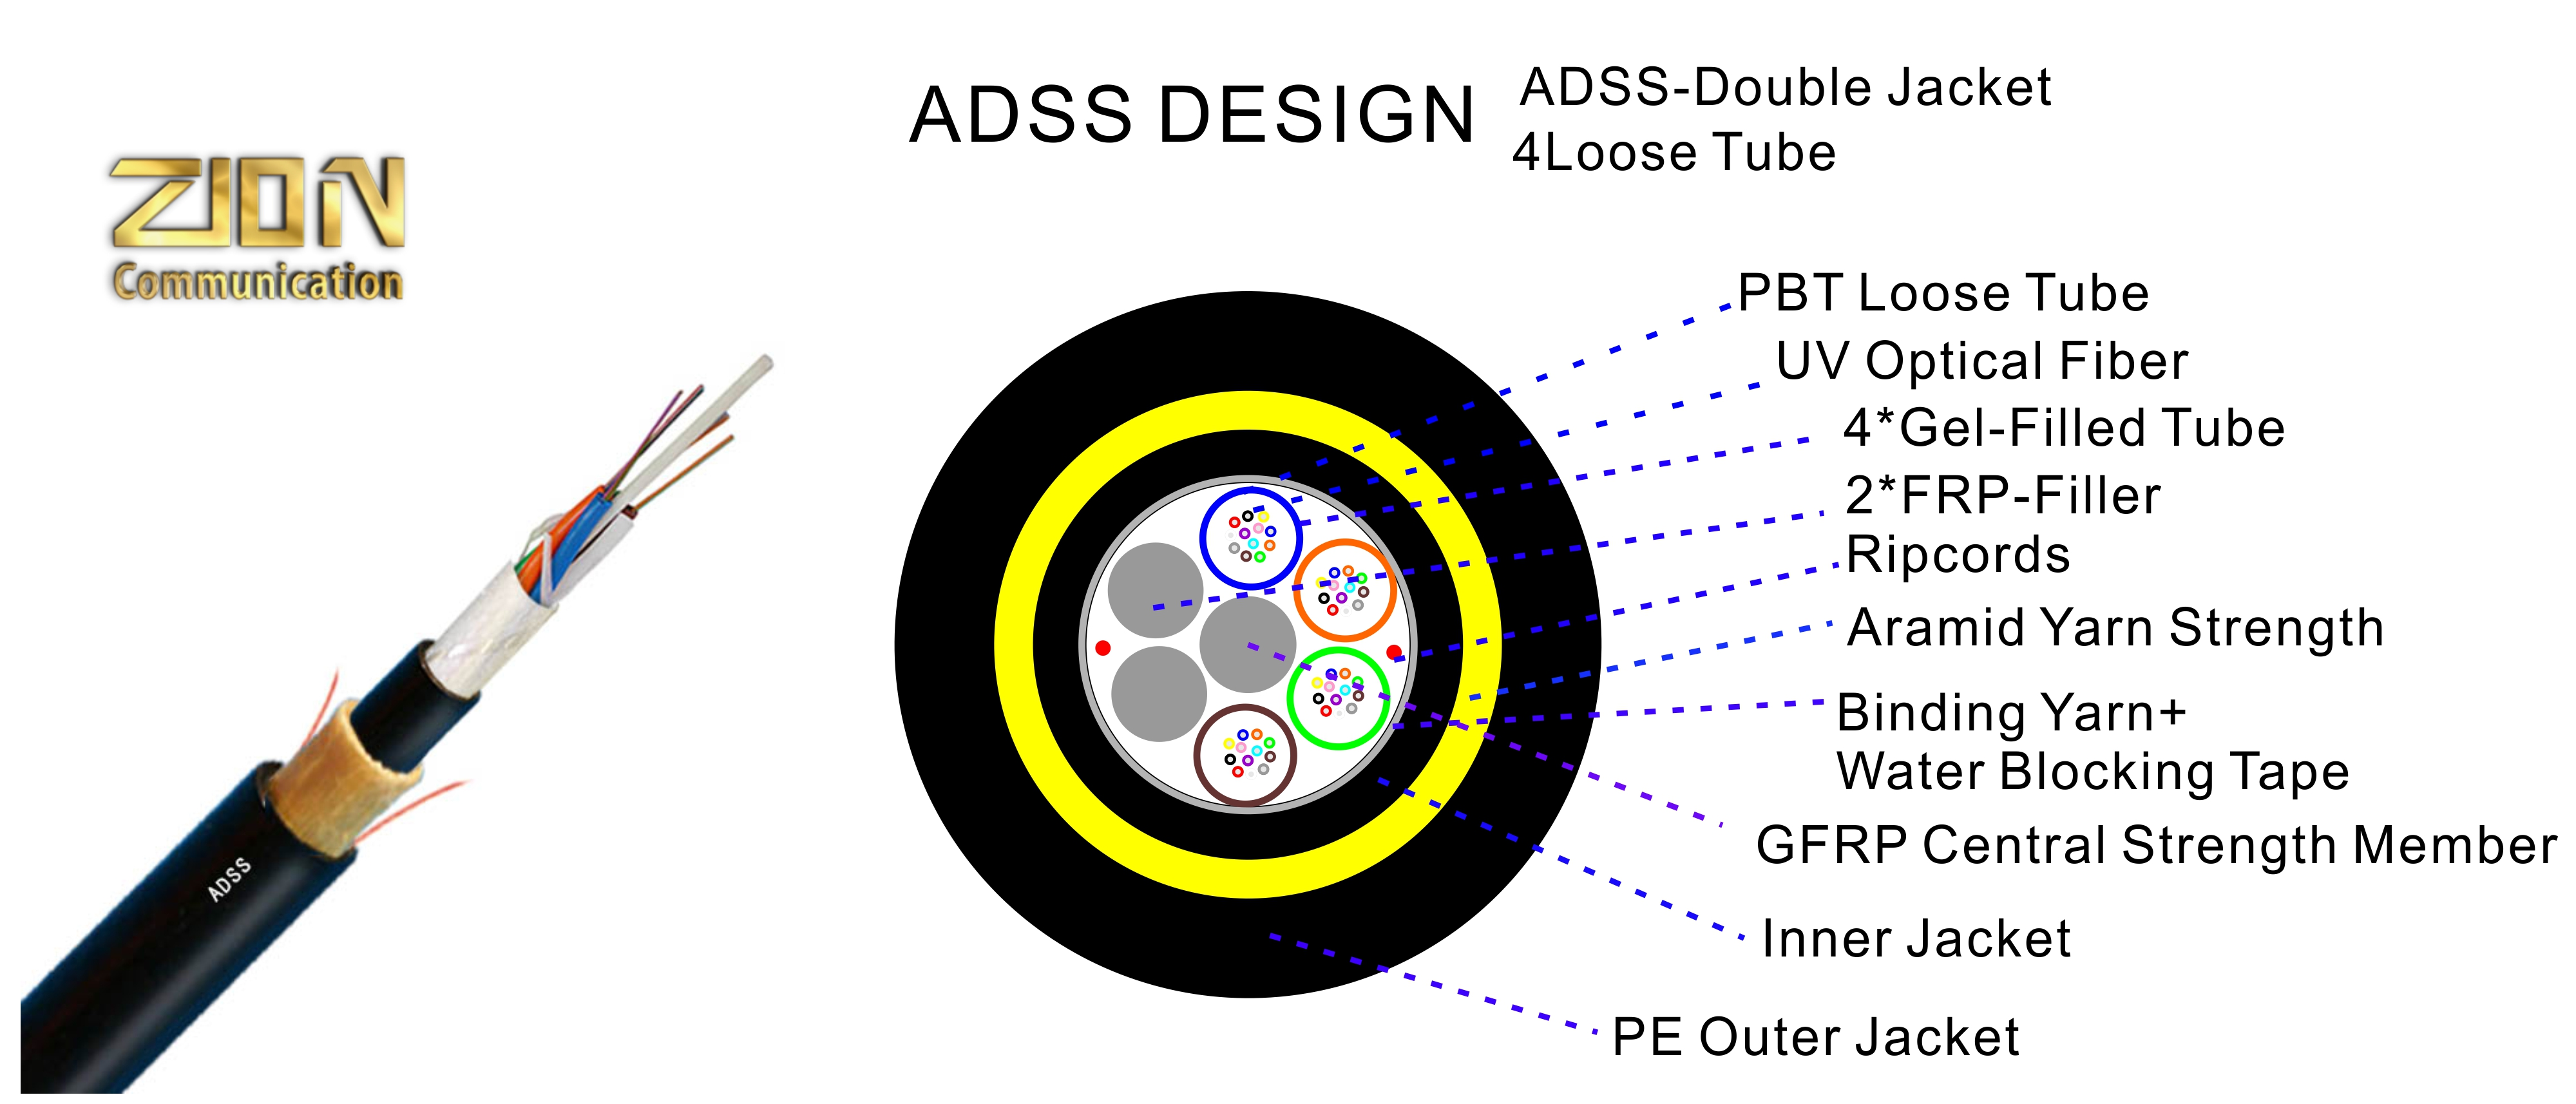 24|32|48 Cores G.652.D Fibers ADSS Double Jacket All-dielectric self-supporting cable PE sheath optical fiber cable